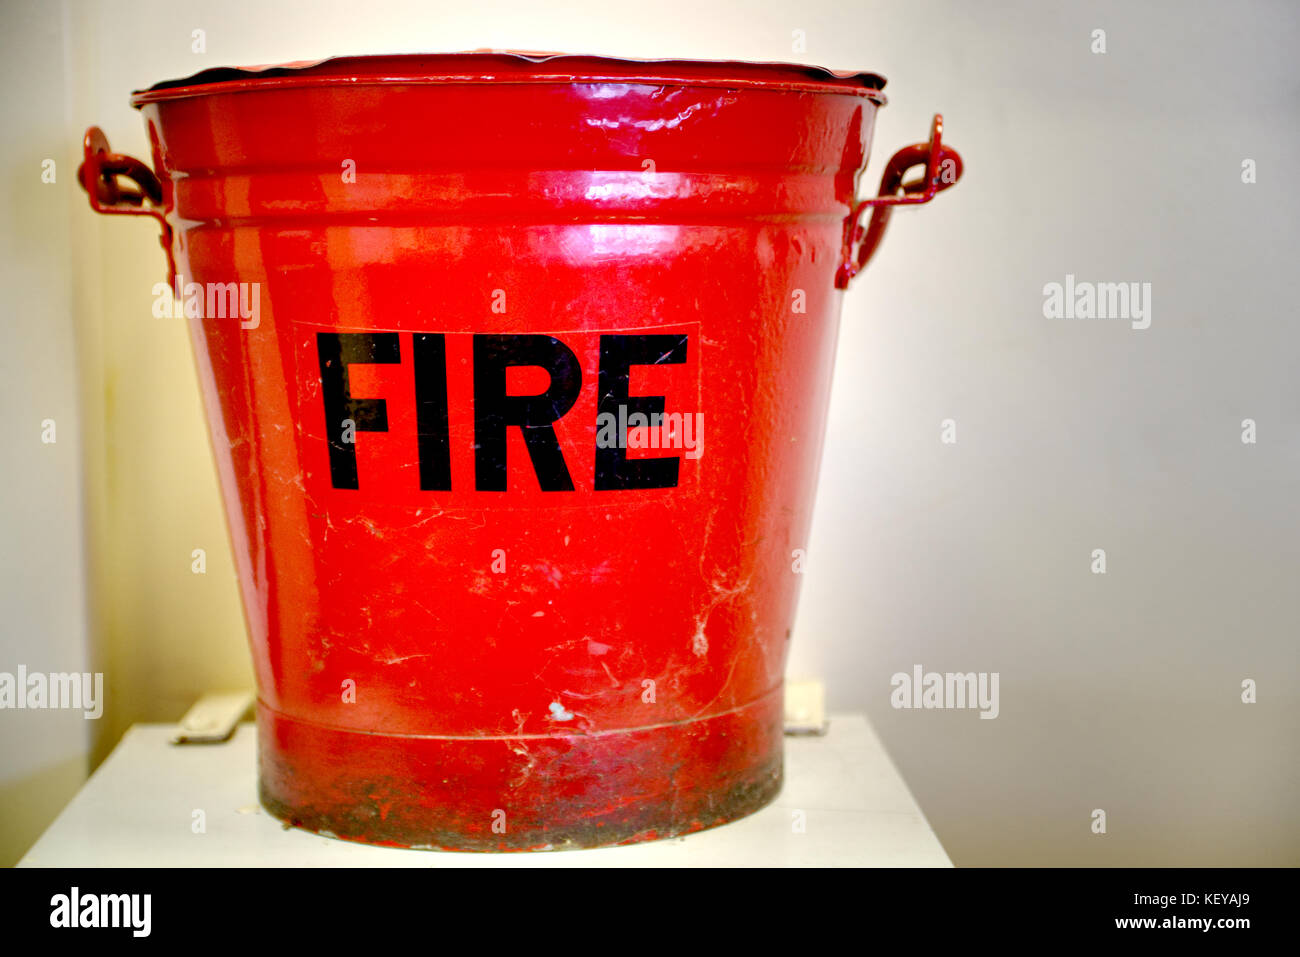 Red fire safety bucket on left hand side of the image - Stock Image